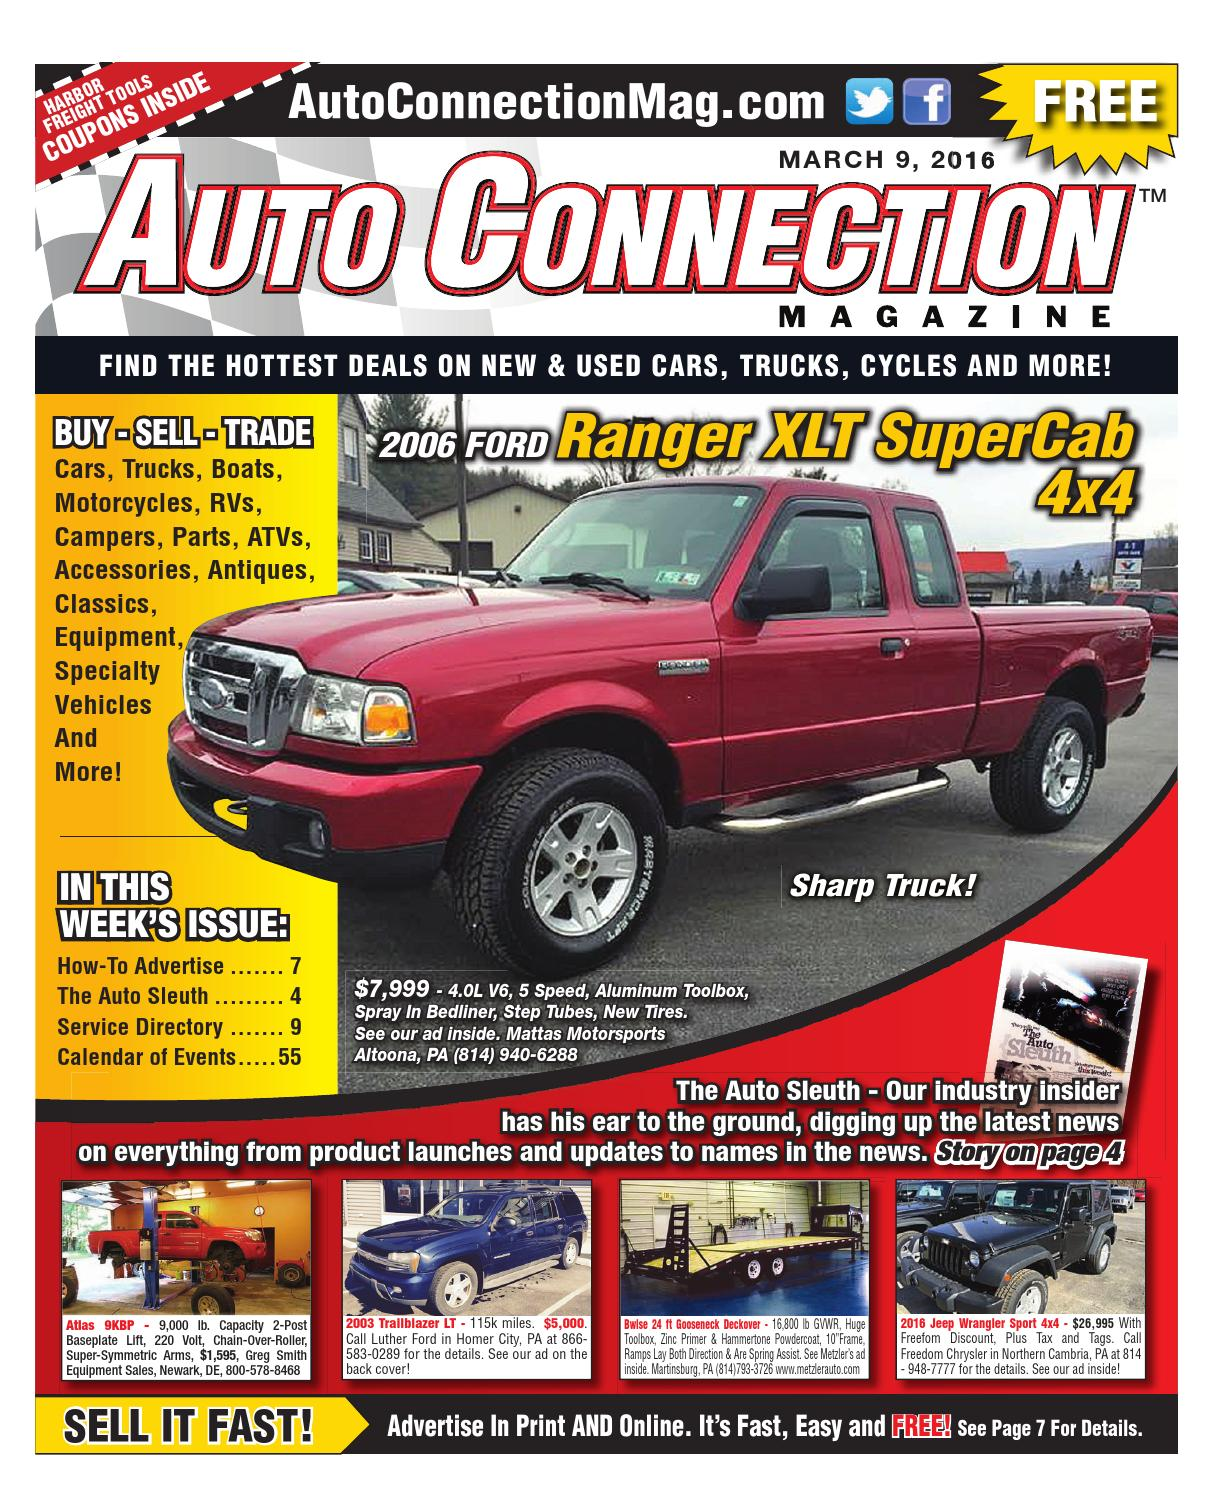 03 09 16 Auto Connection Magazine By Issuu 1988 Chevy Wire Diagramalternatorg20 3 4 Ton Full Size Van